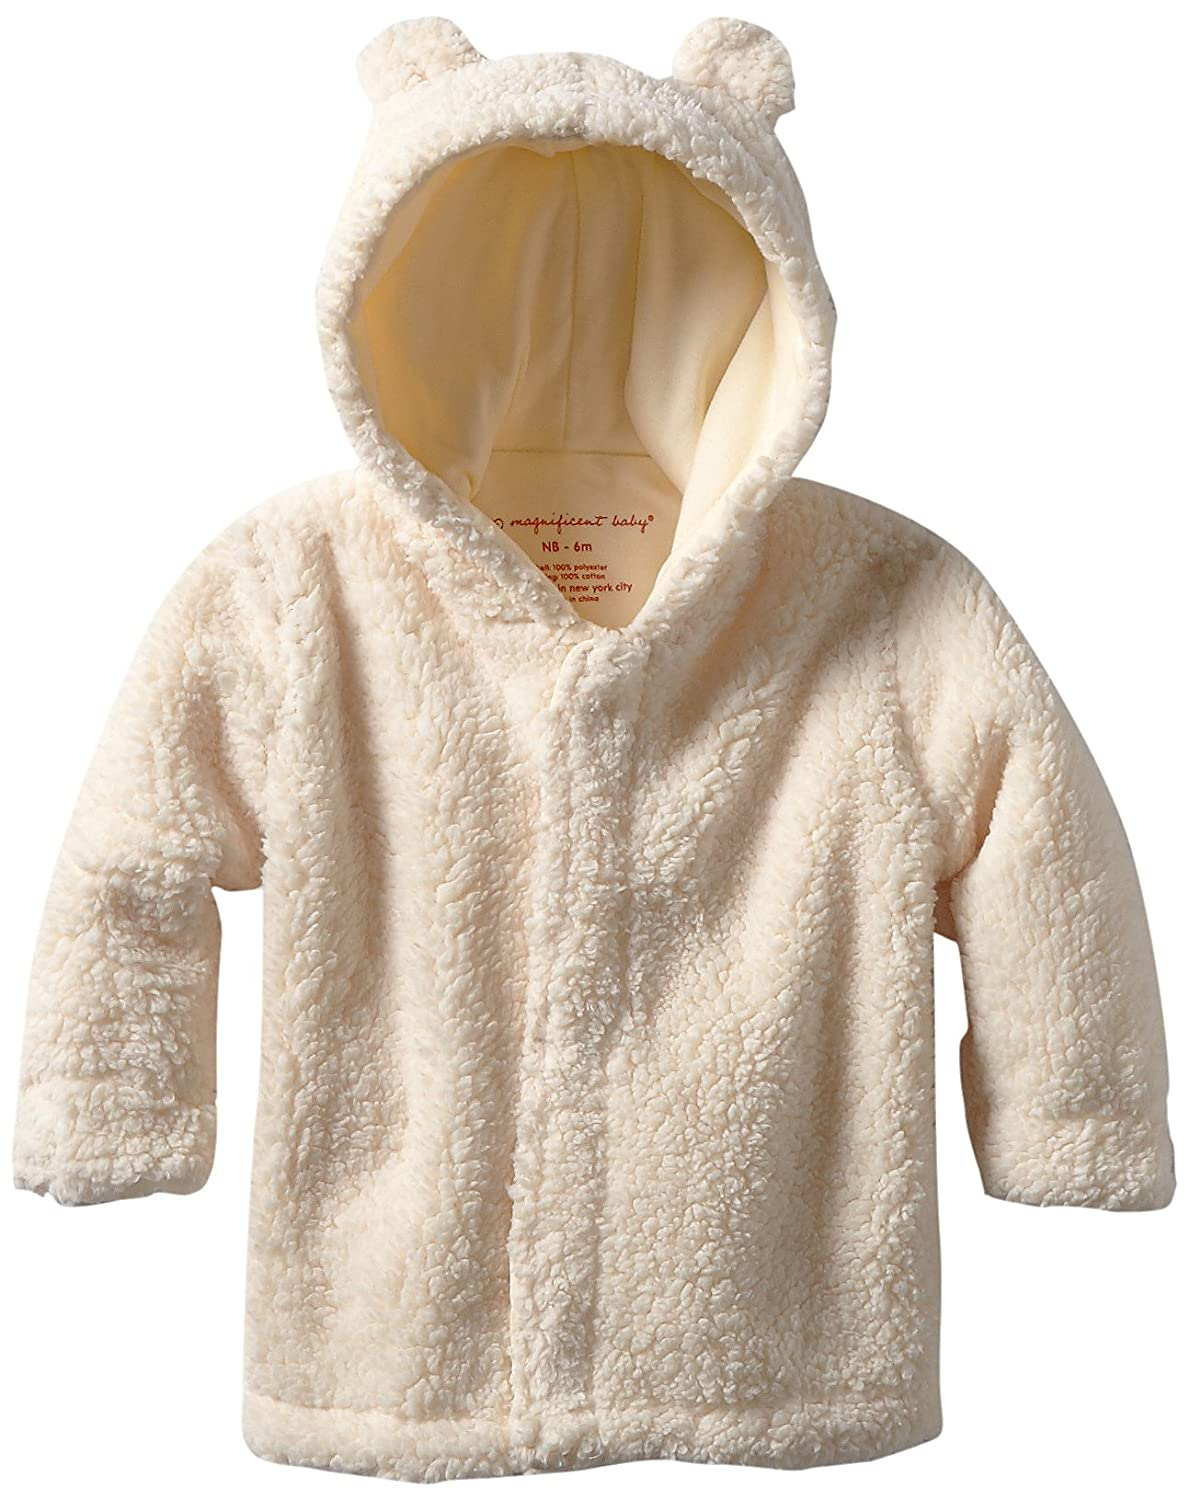 Magnificent Baby Unisex-Baby Infant Hooded Bear Jacket, Cream, 0-6 Months Magnificent Baby Baby 5004U--0-6M